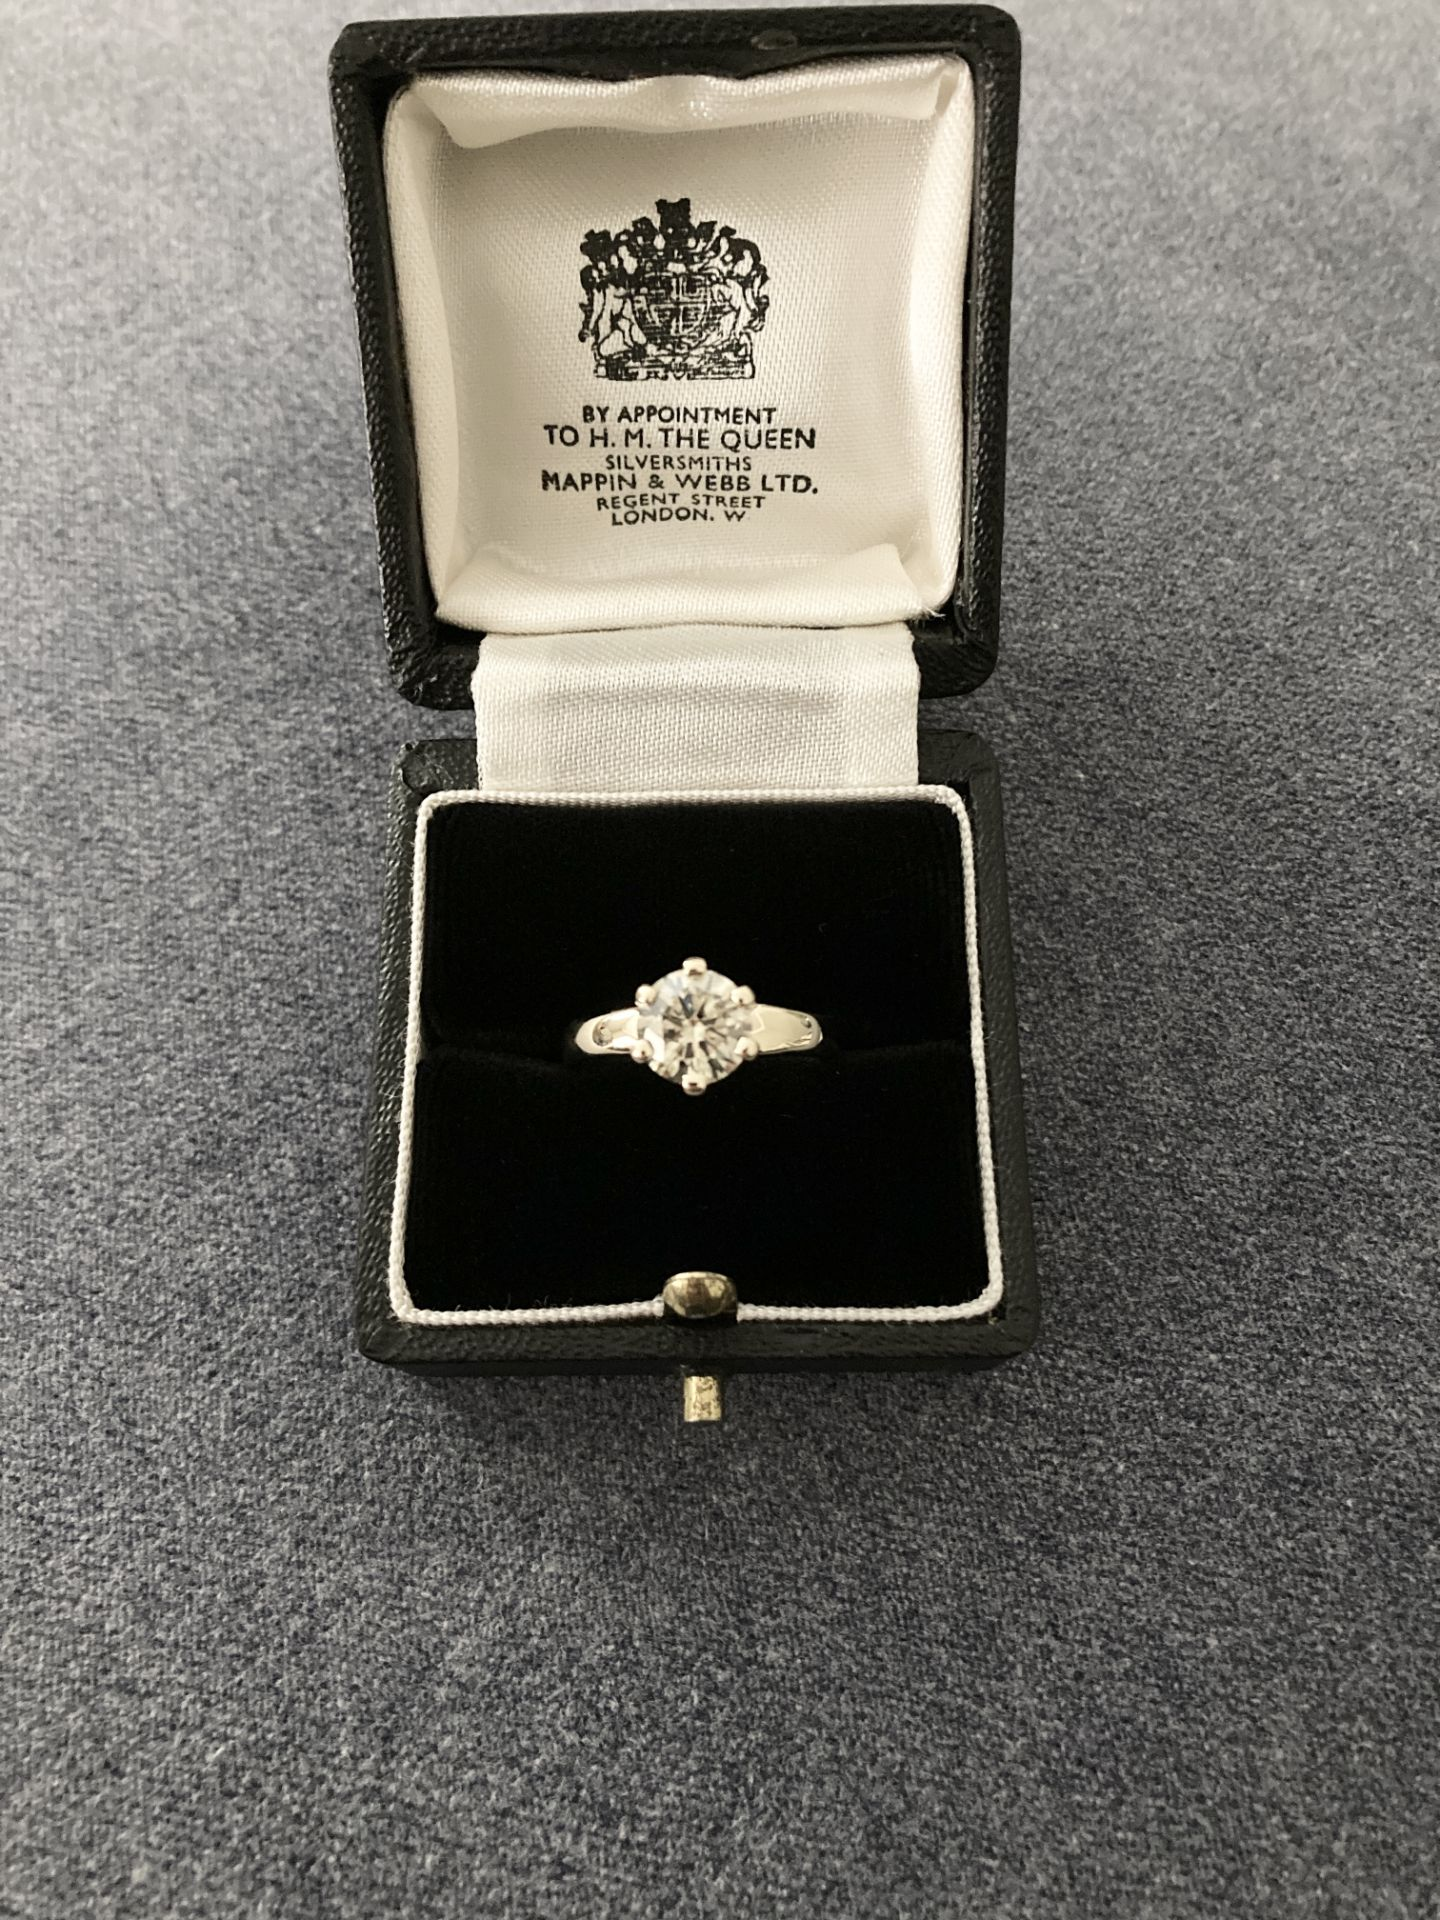 1.54CT DIAMOND SOLITAIRE RING Y. GOLD (ROUND BRILLIANT) - 2012 VALUATION £6,200 INCLUDED - Image 2 of 14